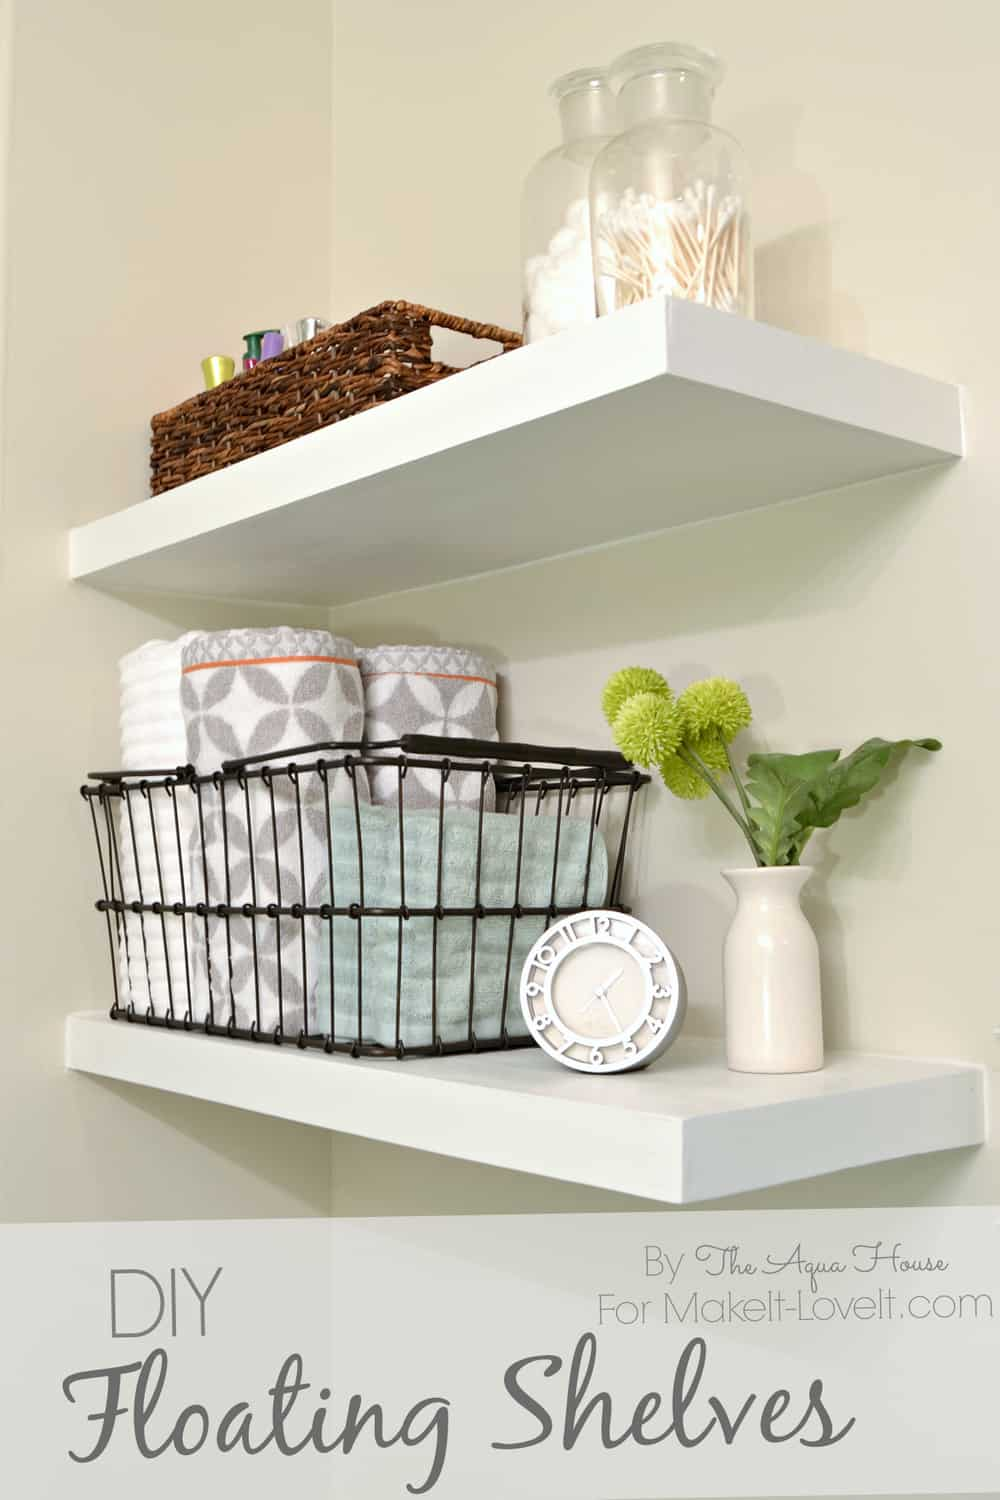 Floatings-Shelves-Title-4